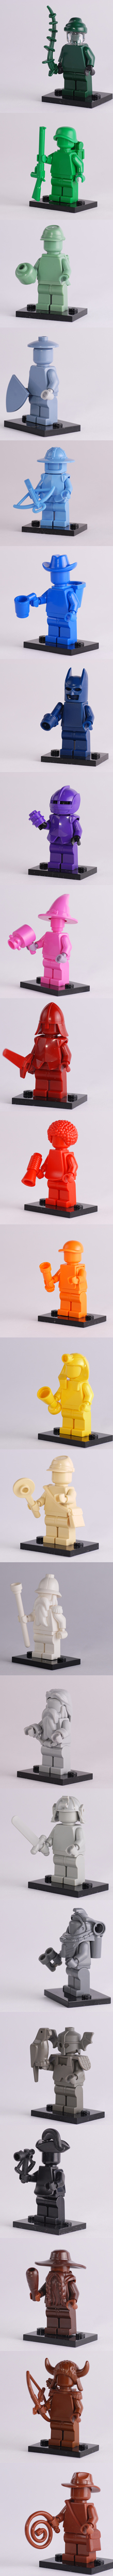 colors_minifig-17.jpg